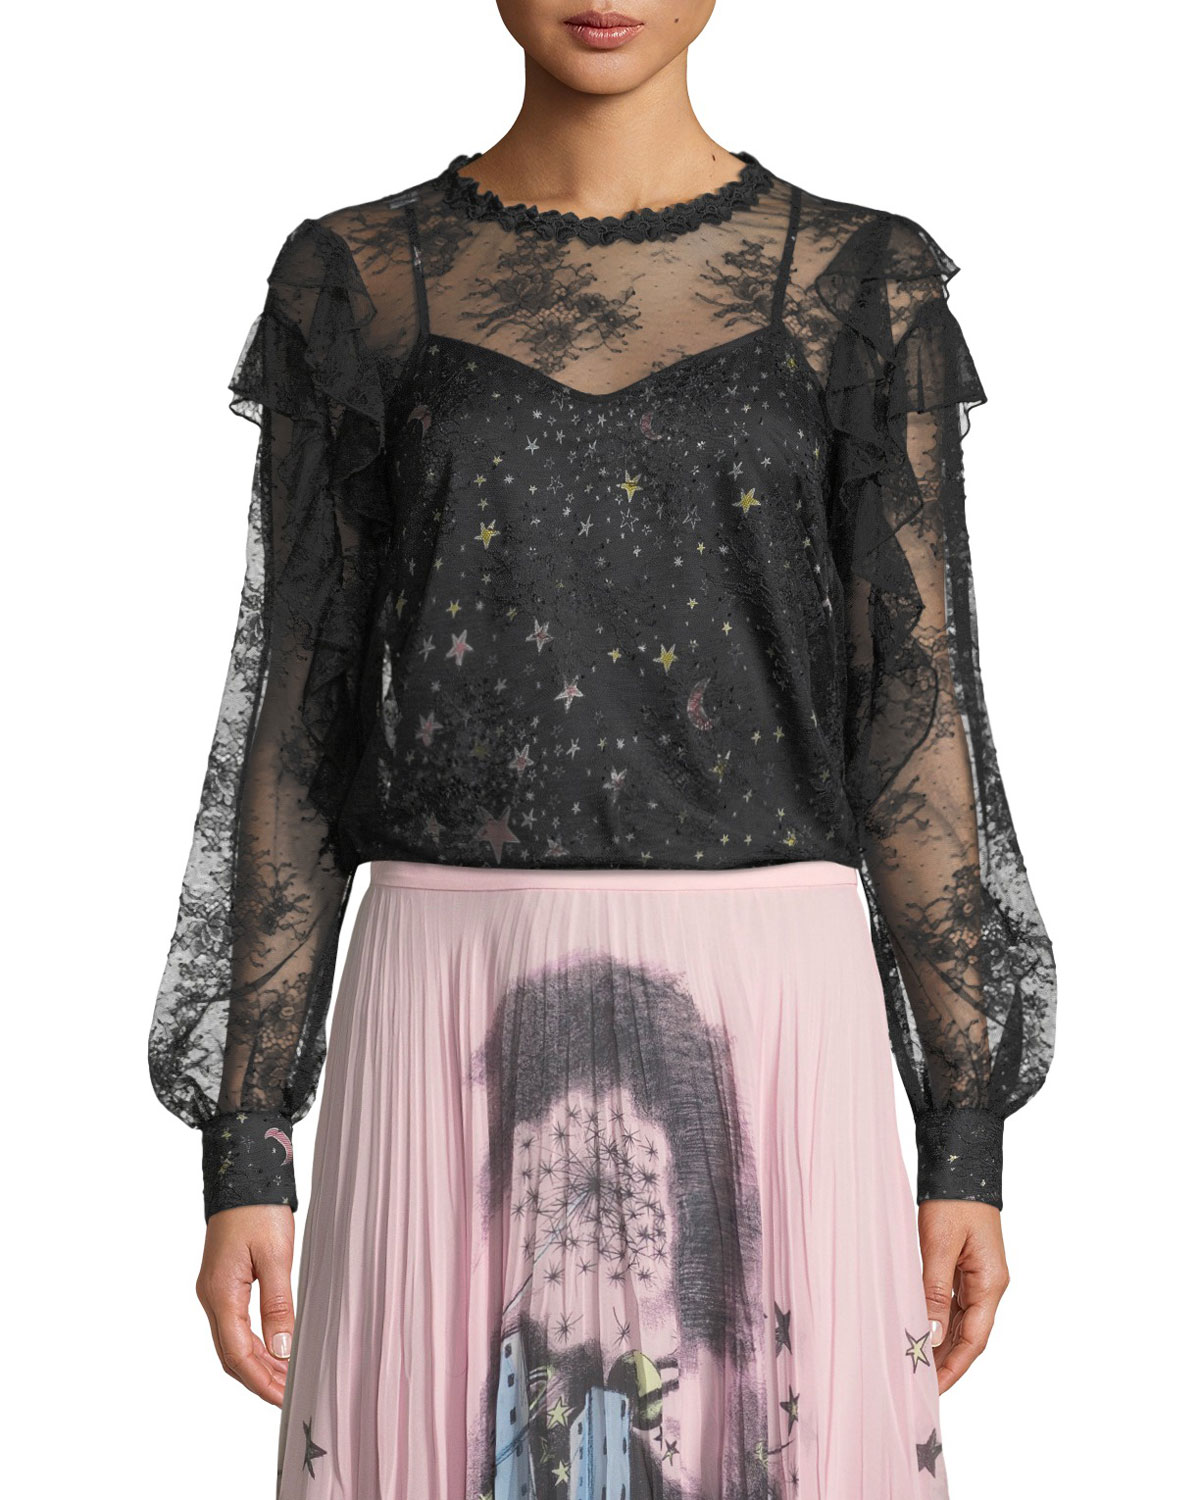 Lace Blouse With Printed Camisole, Fantasy Print Blk